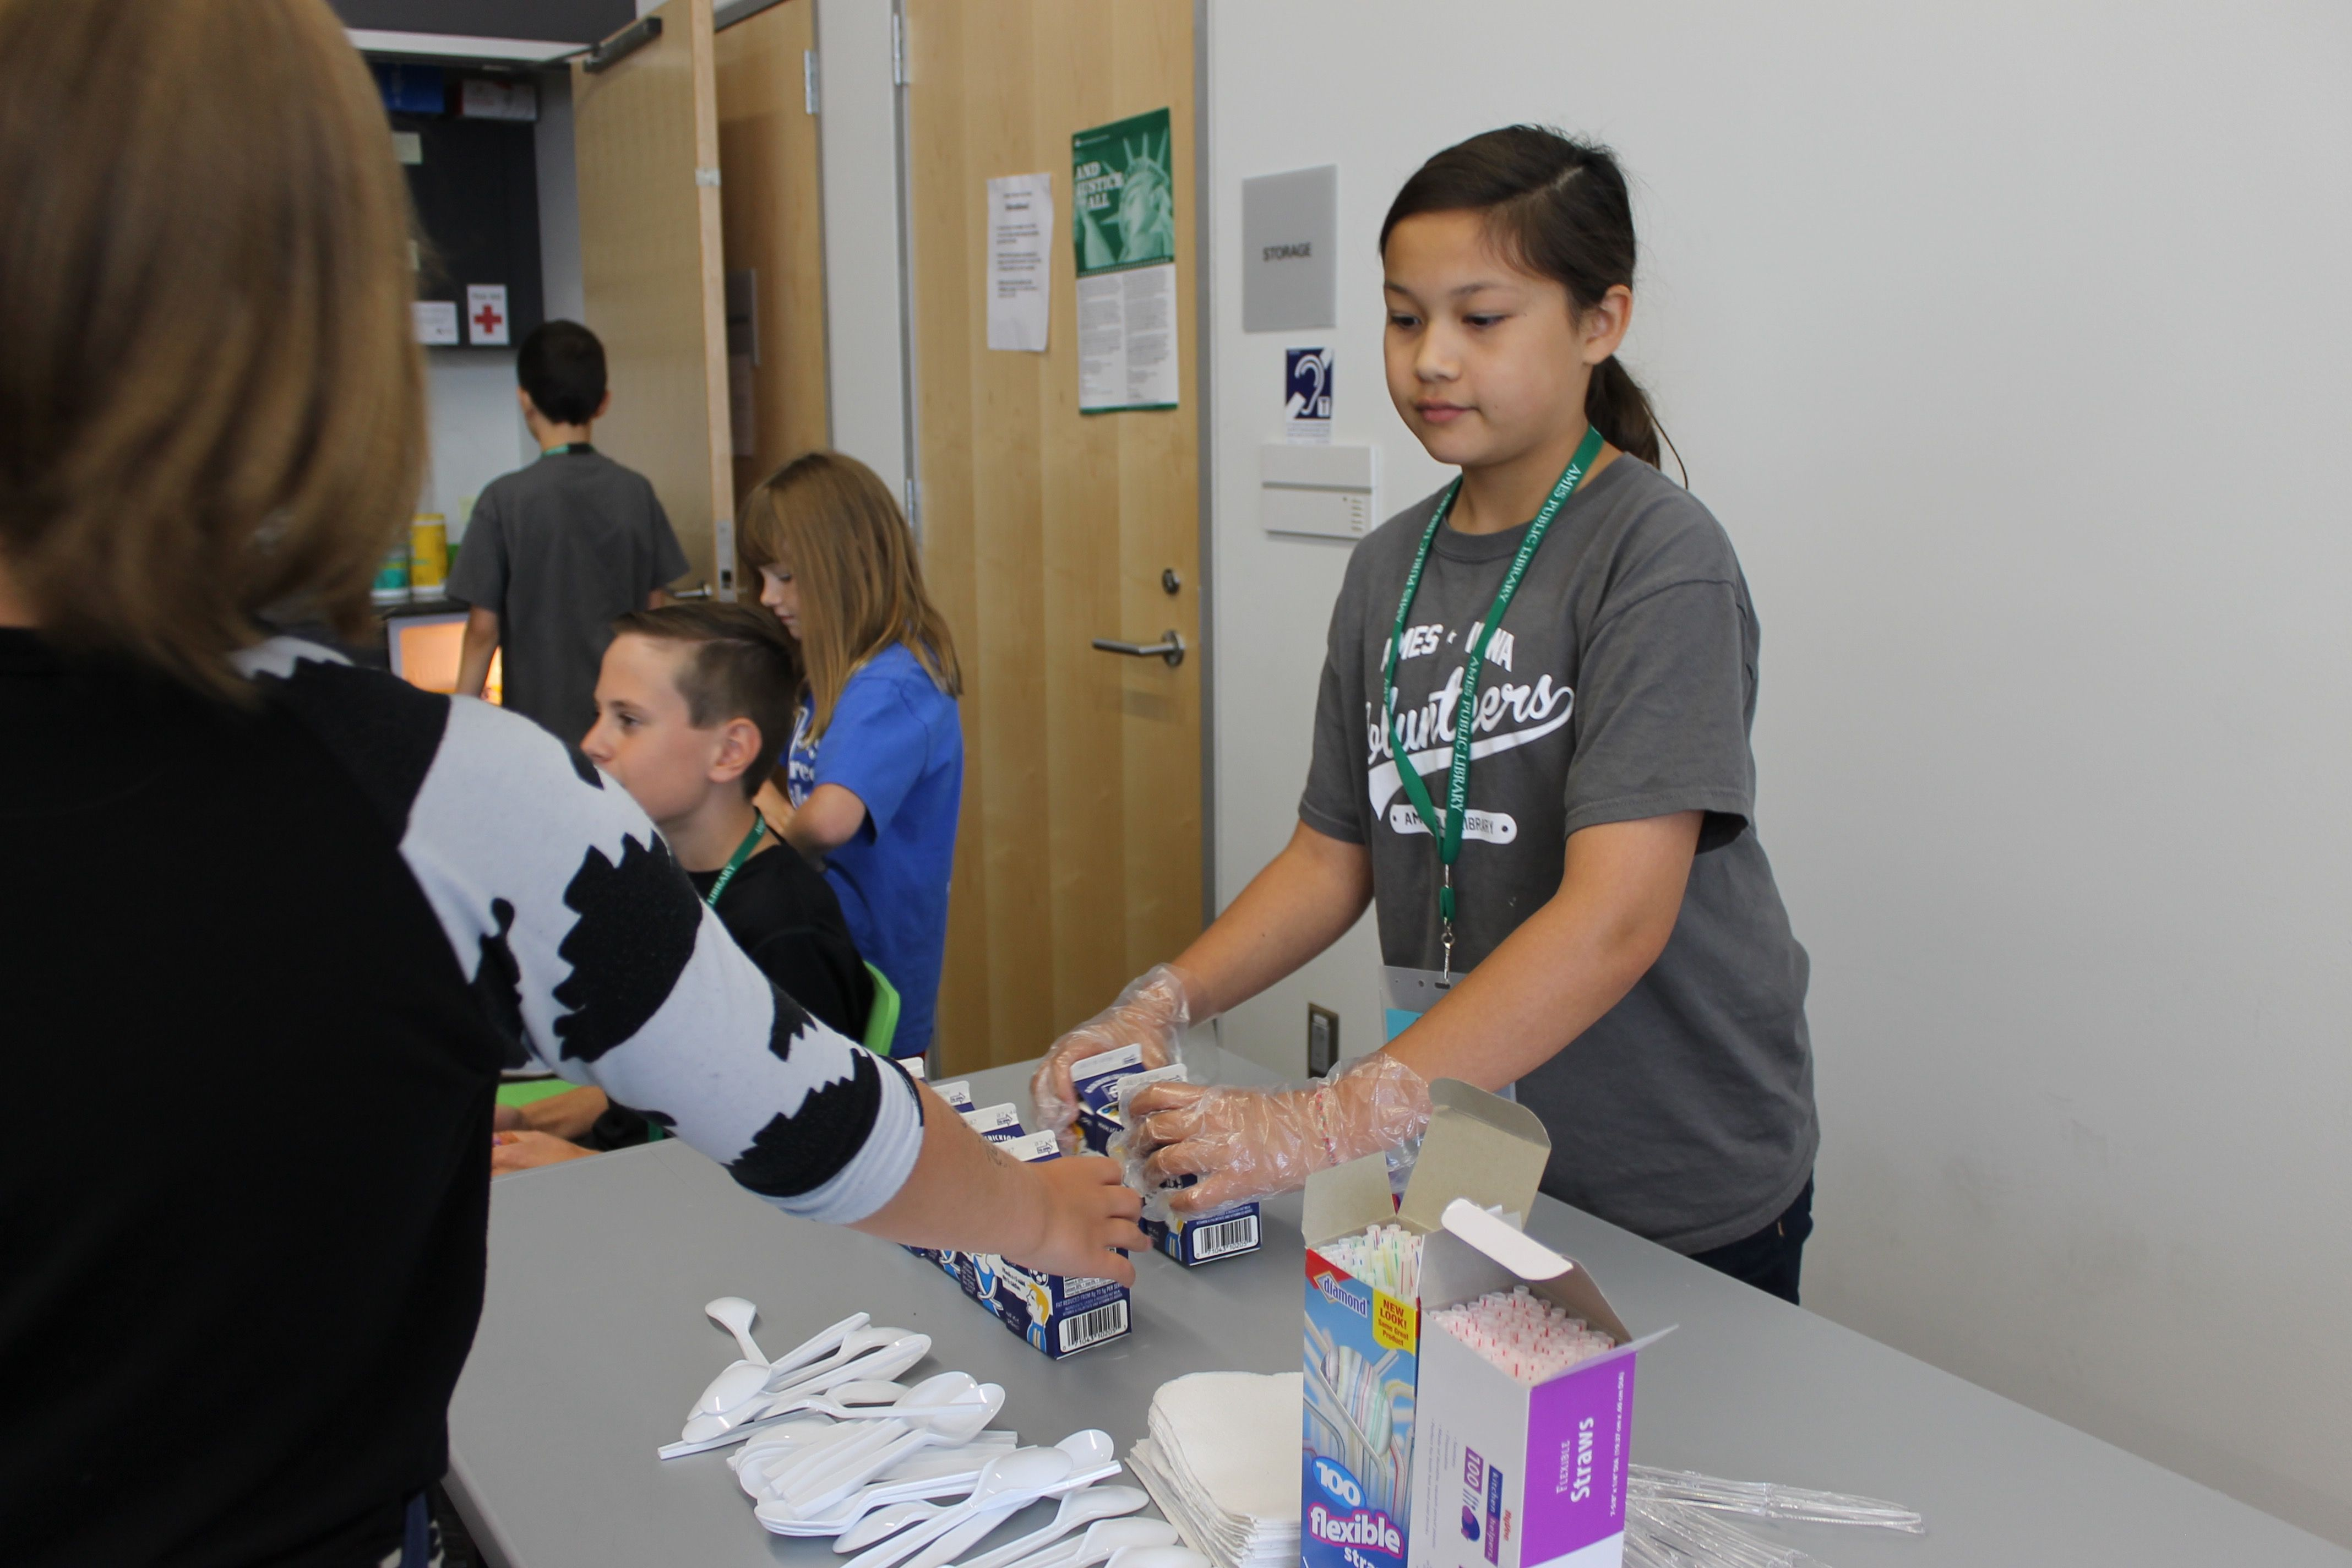 Ames Public Library Volunteer Emma Dorhout 13 Hands Out Cartons Of Milk For The Library S Summer Meals For Teens And Kids Programming For Kids Photo Tribune